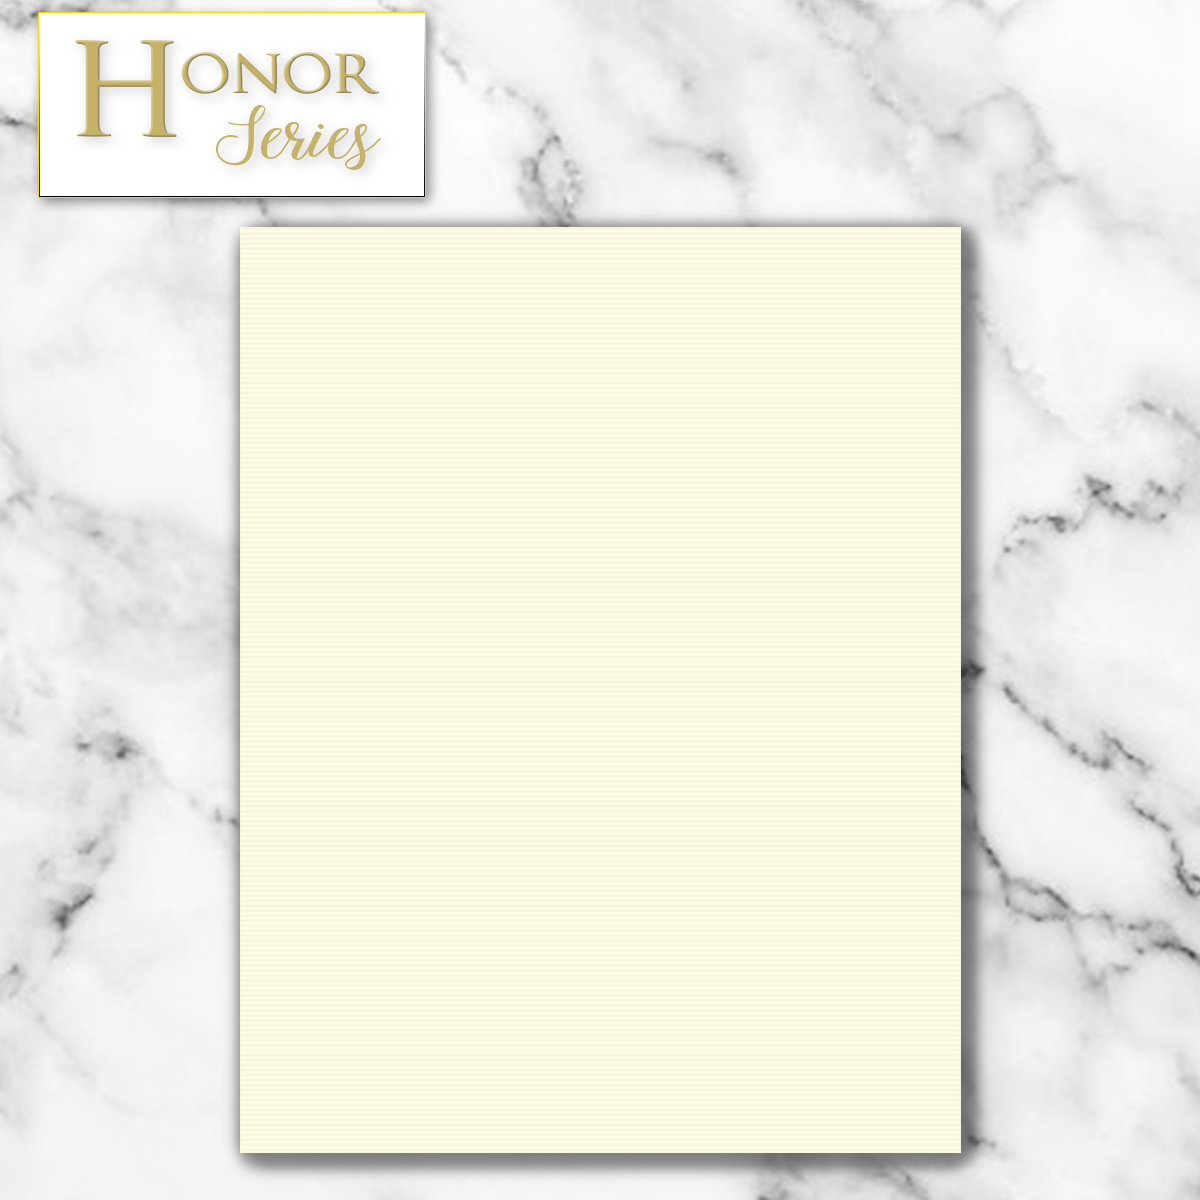 Honor Series - Oxford Cotton - 100 Count